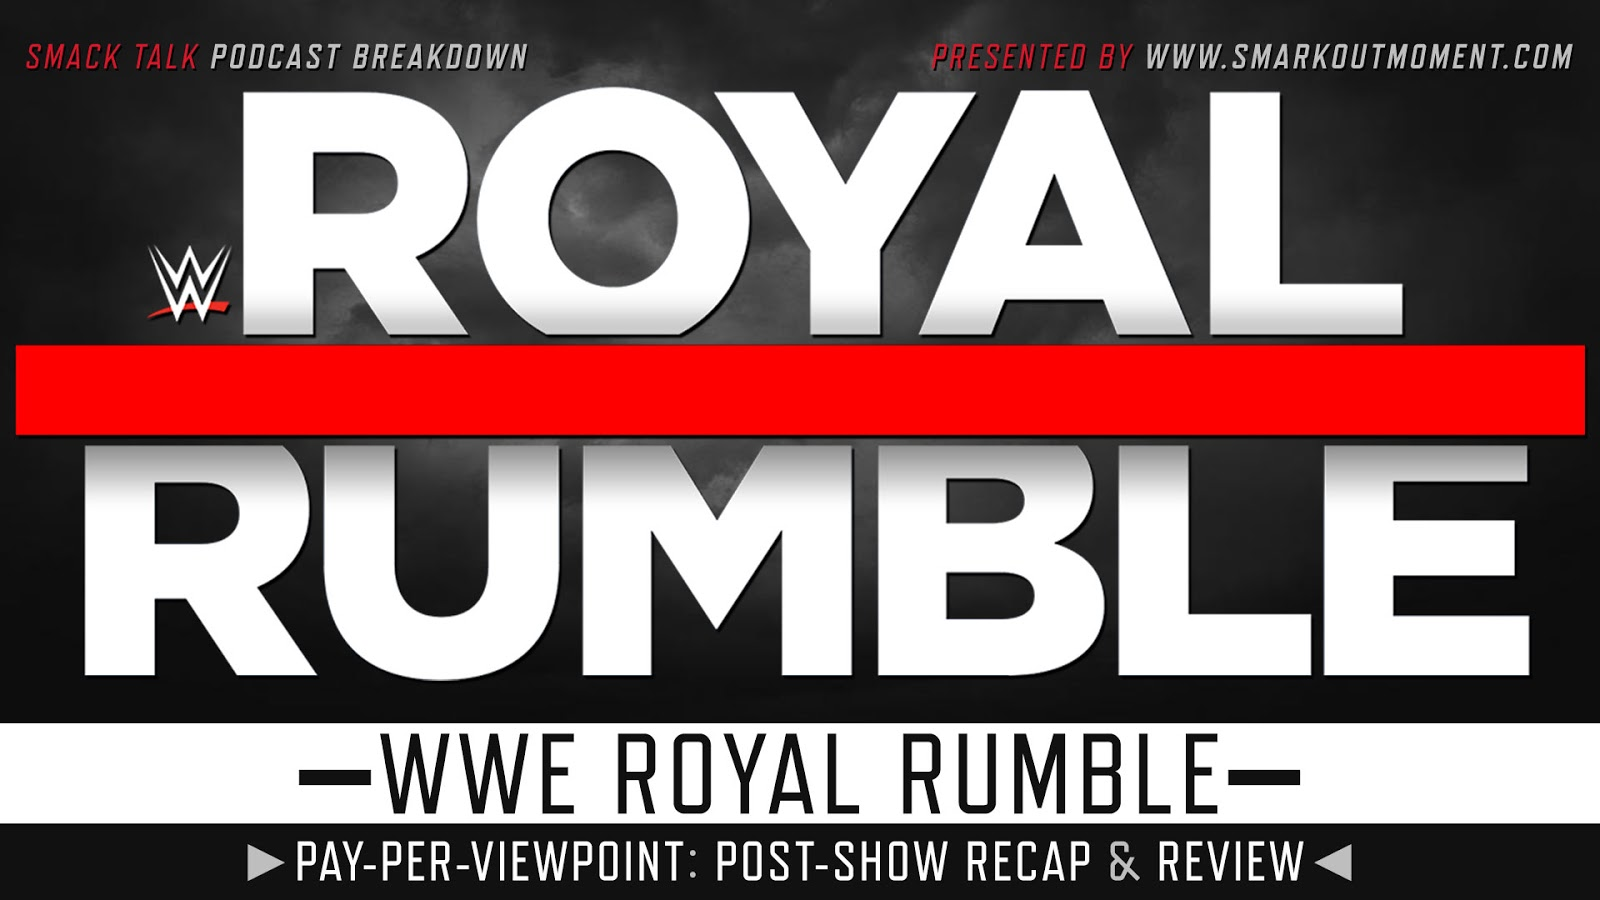 WWE Royal Rumble 2020 Recap and Review Podcast